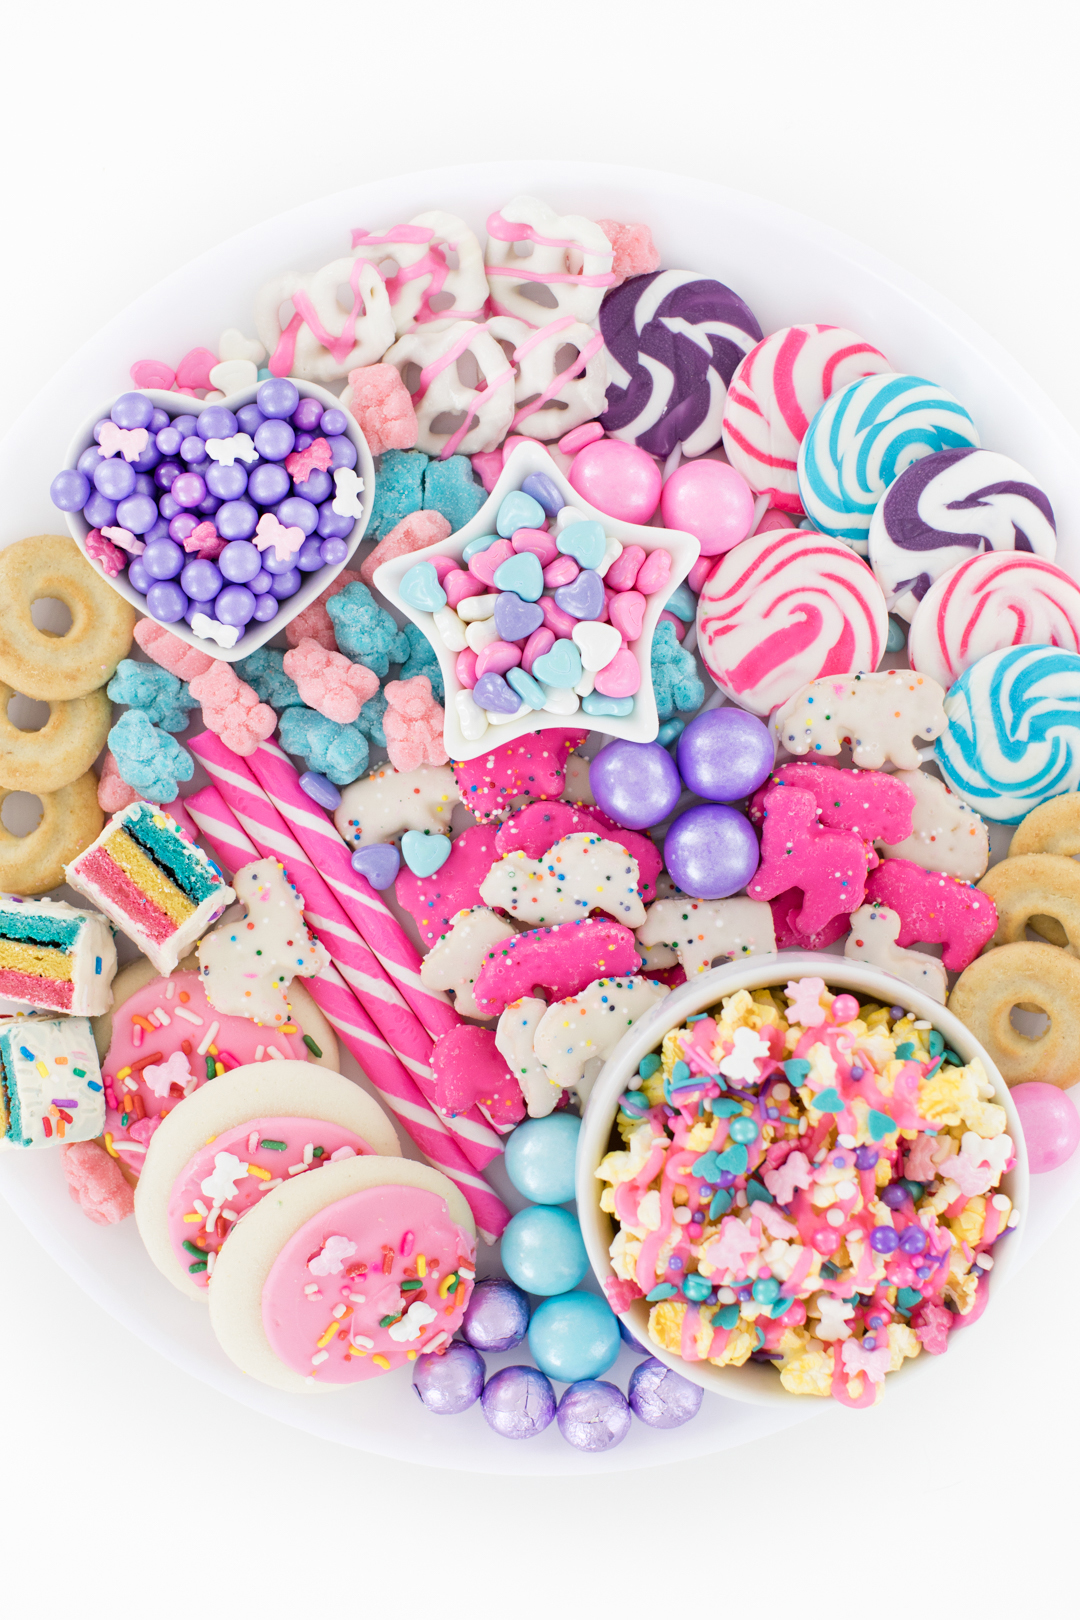 pretty pastel snack tray with popcorn, candy sticks, gumballs, pastel covered pretzels